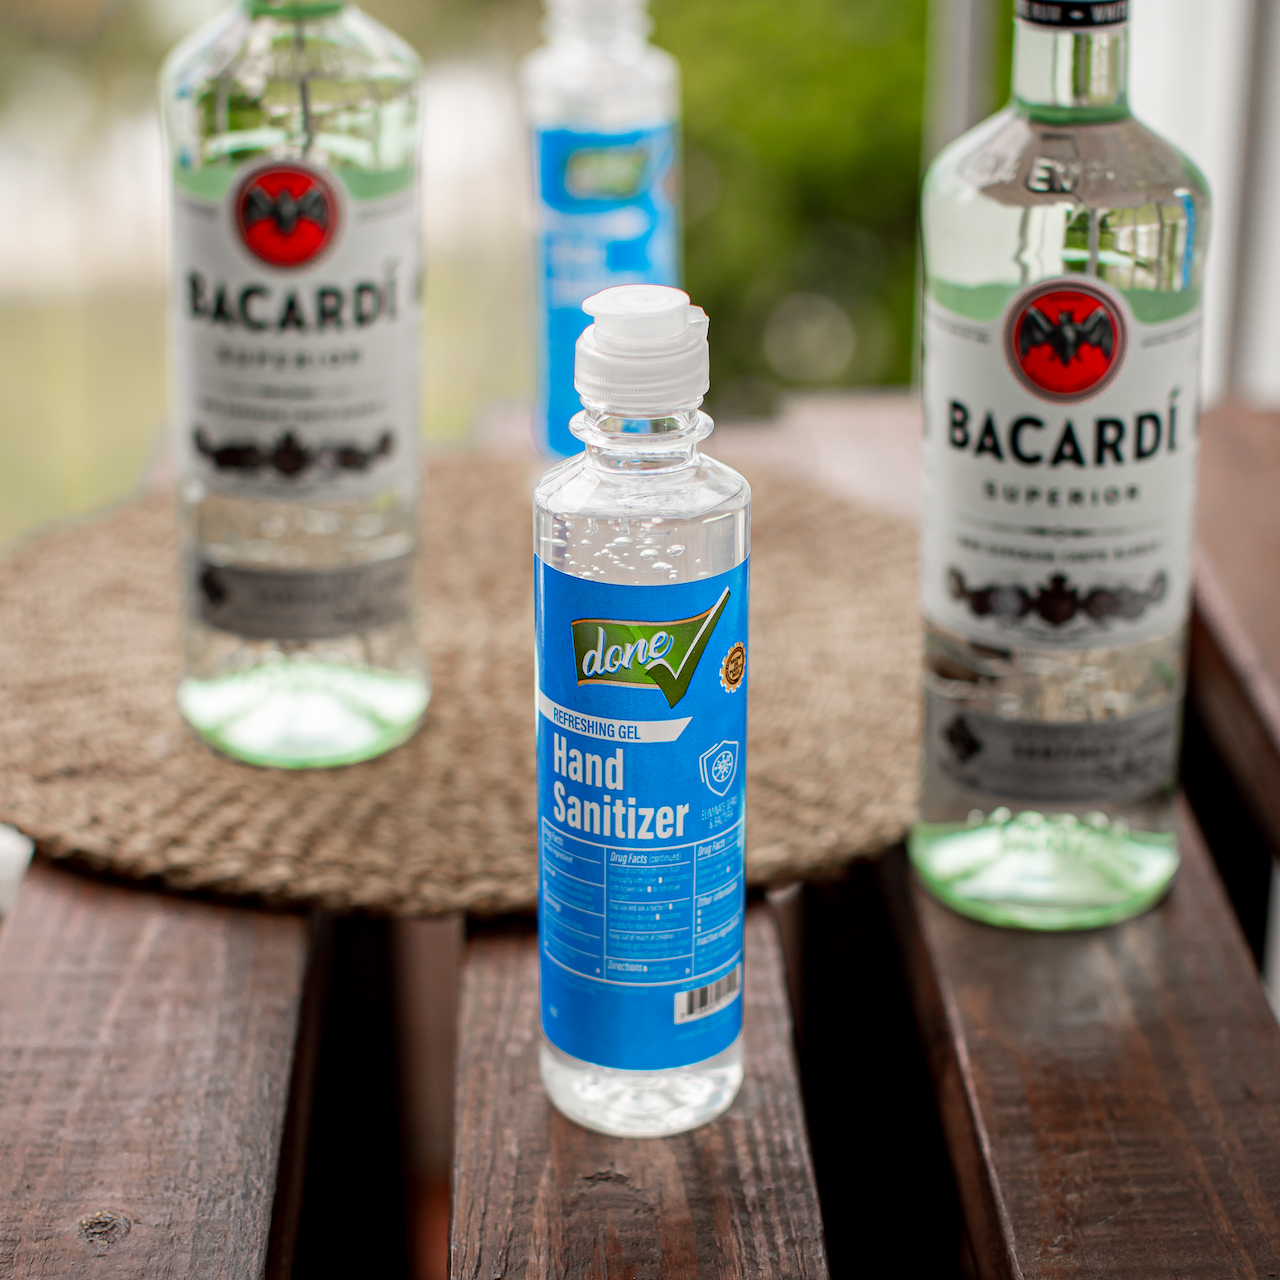 Bacardi products hand sanitizer to fight COVID-19